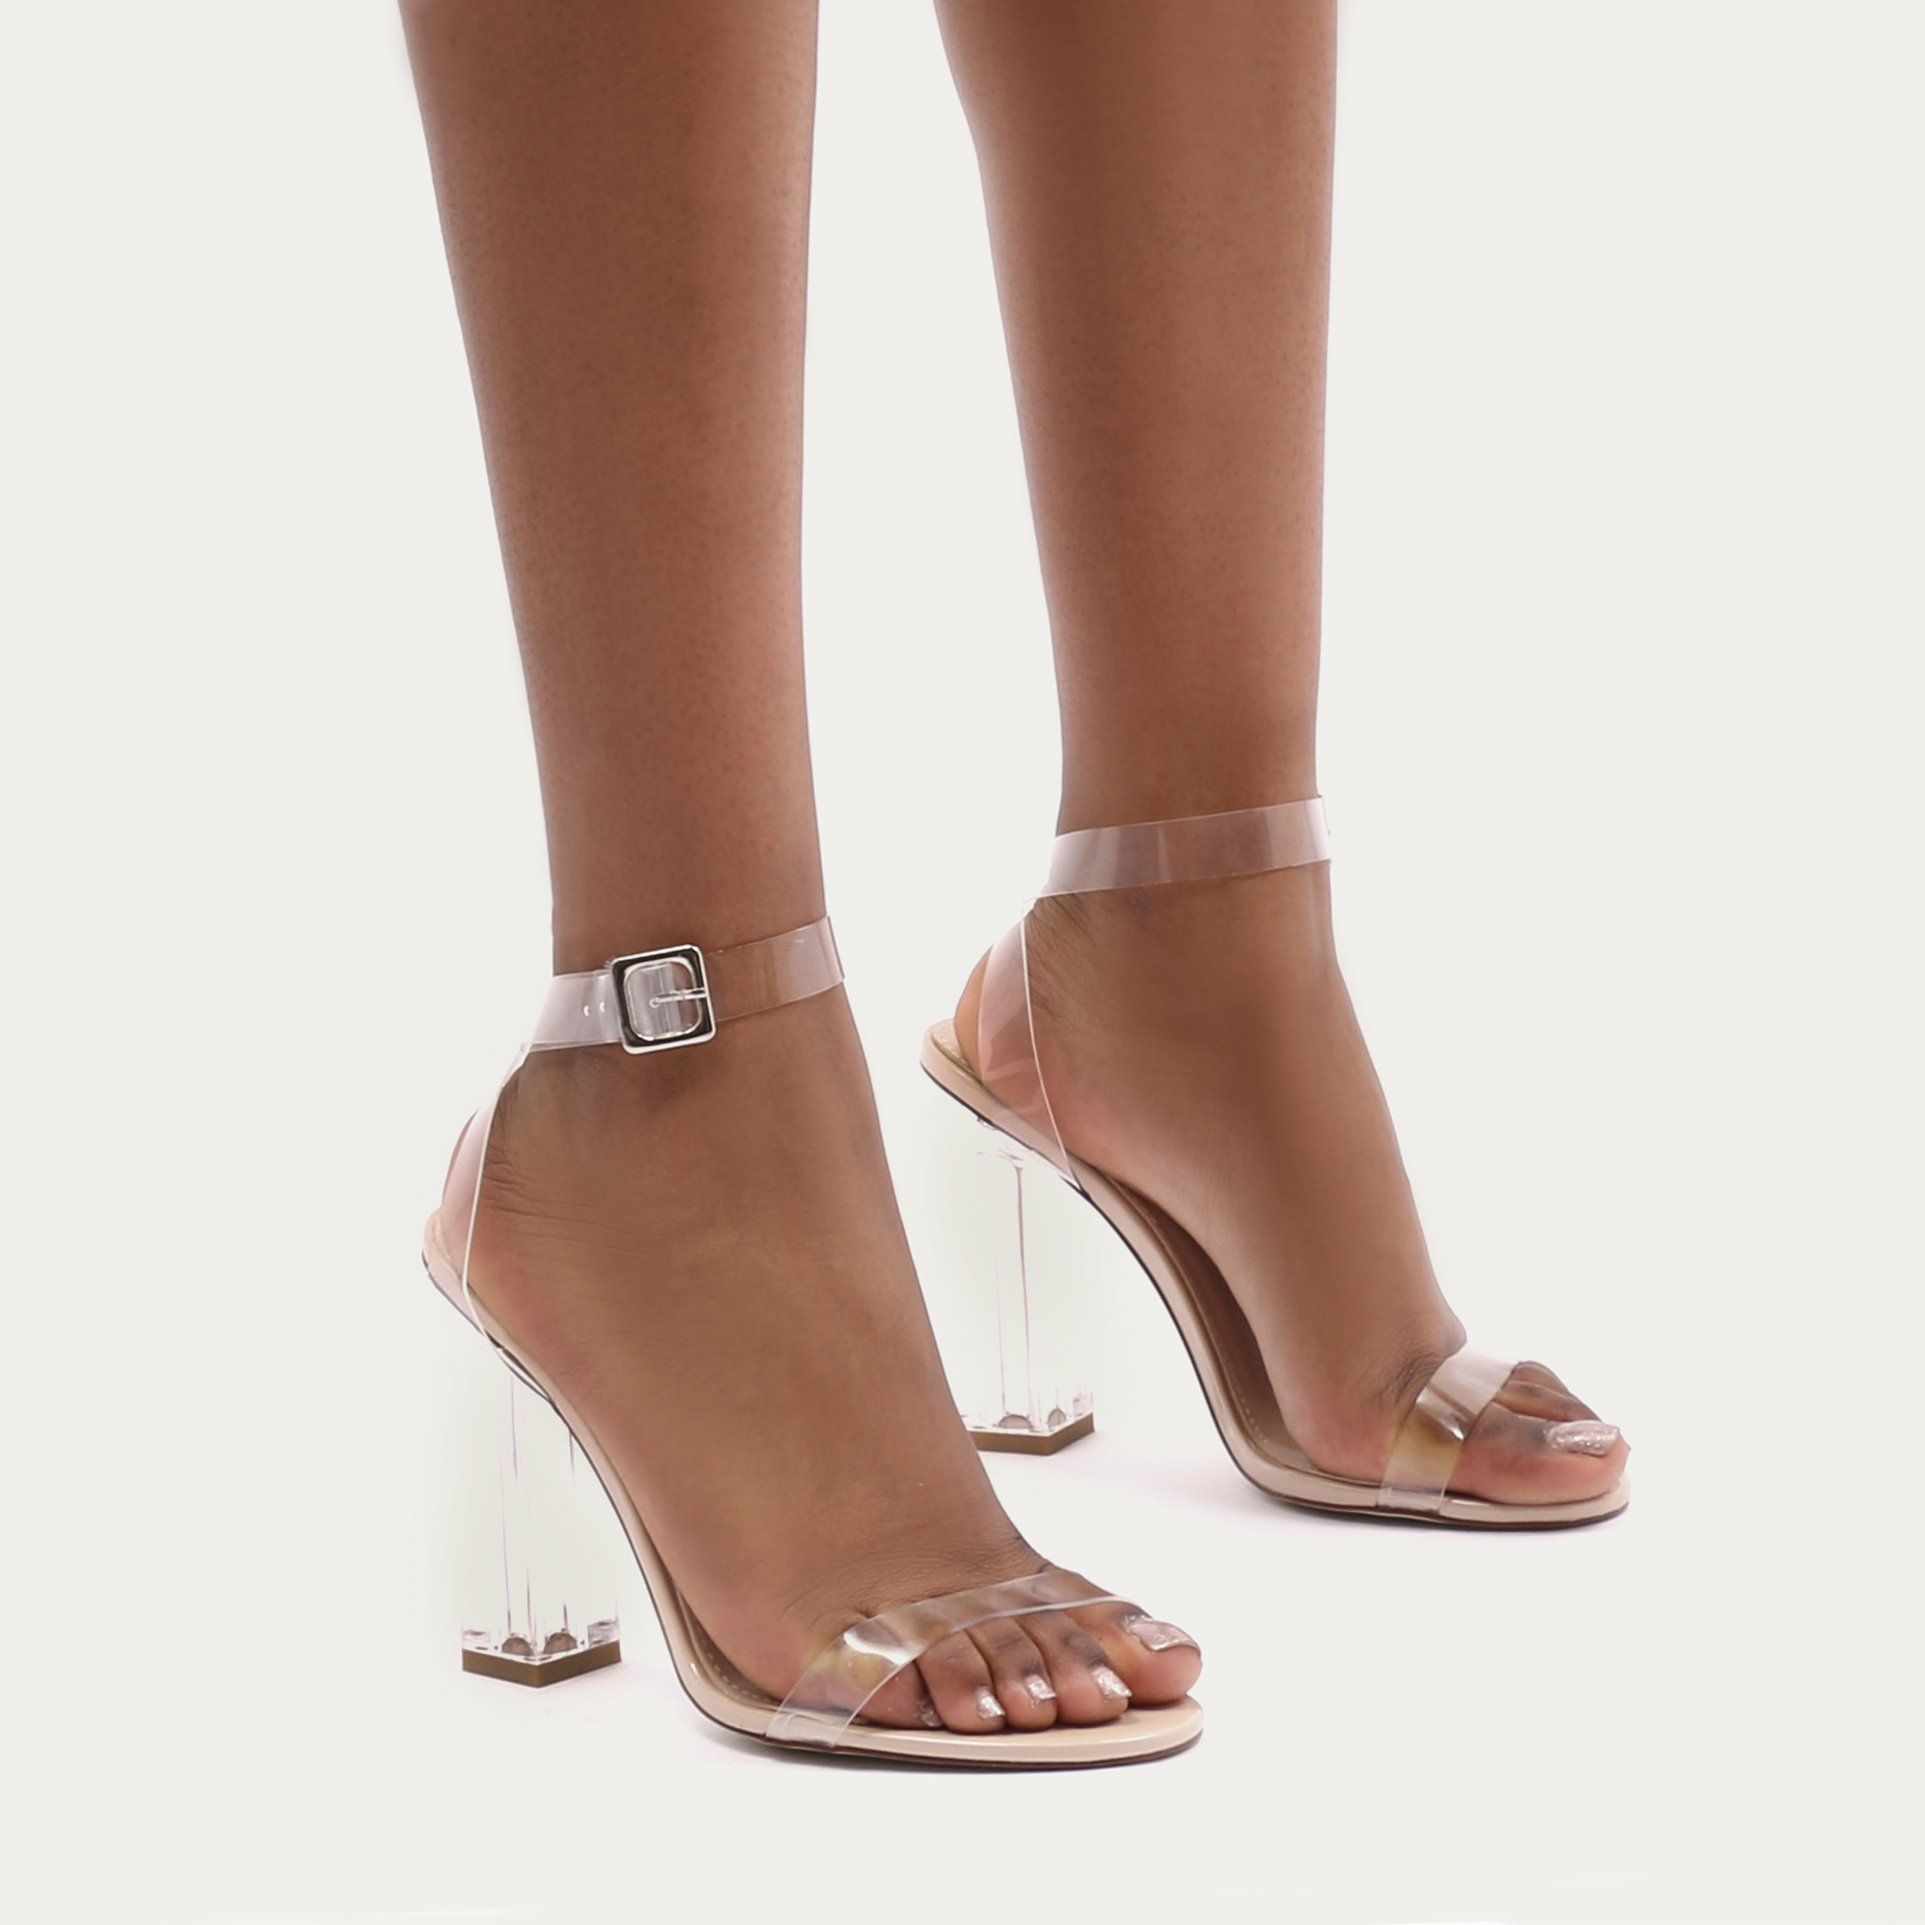 2f98fe67c8e Alia is sure to make heads turn. These are gonna be plastered all over your  insta. Featuring the all important perspex heel. The see through toe strap  ...